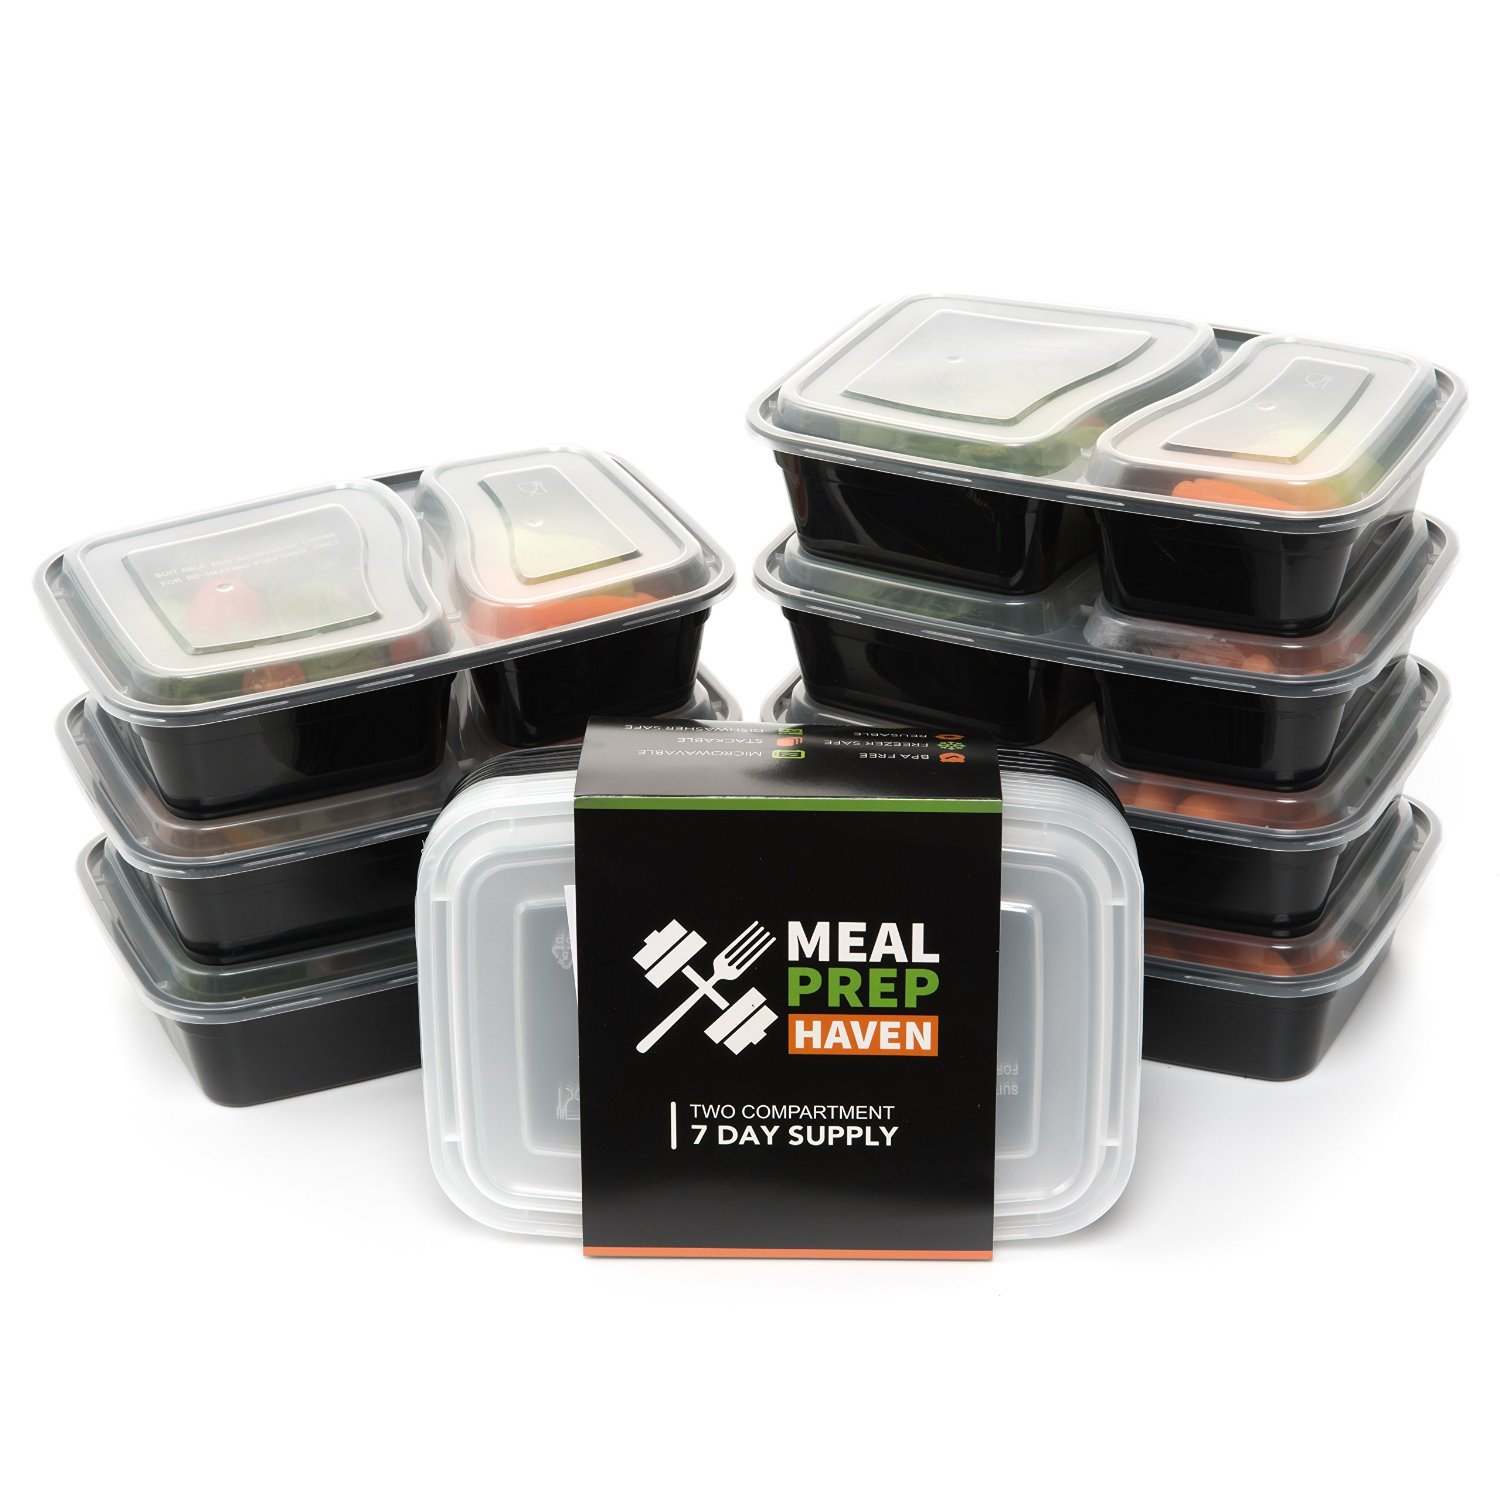 Meal Prep Haven 3 Compartment Food Storage Containers With Lids Reusable Microwave And Dishwasher Safe Bento Lunch Box Stackable Set Of 7 14